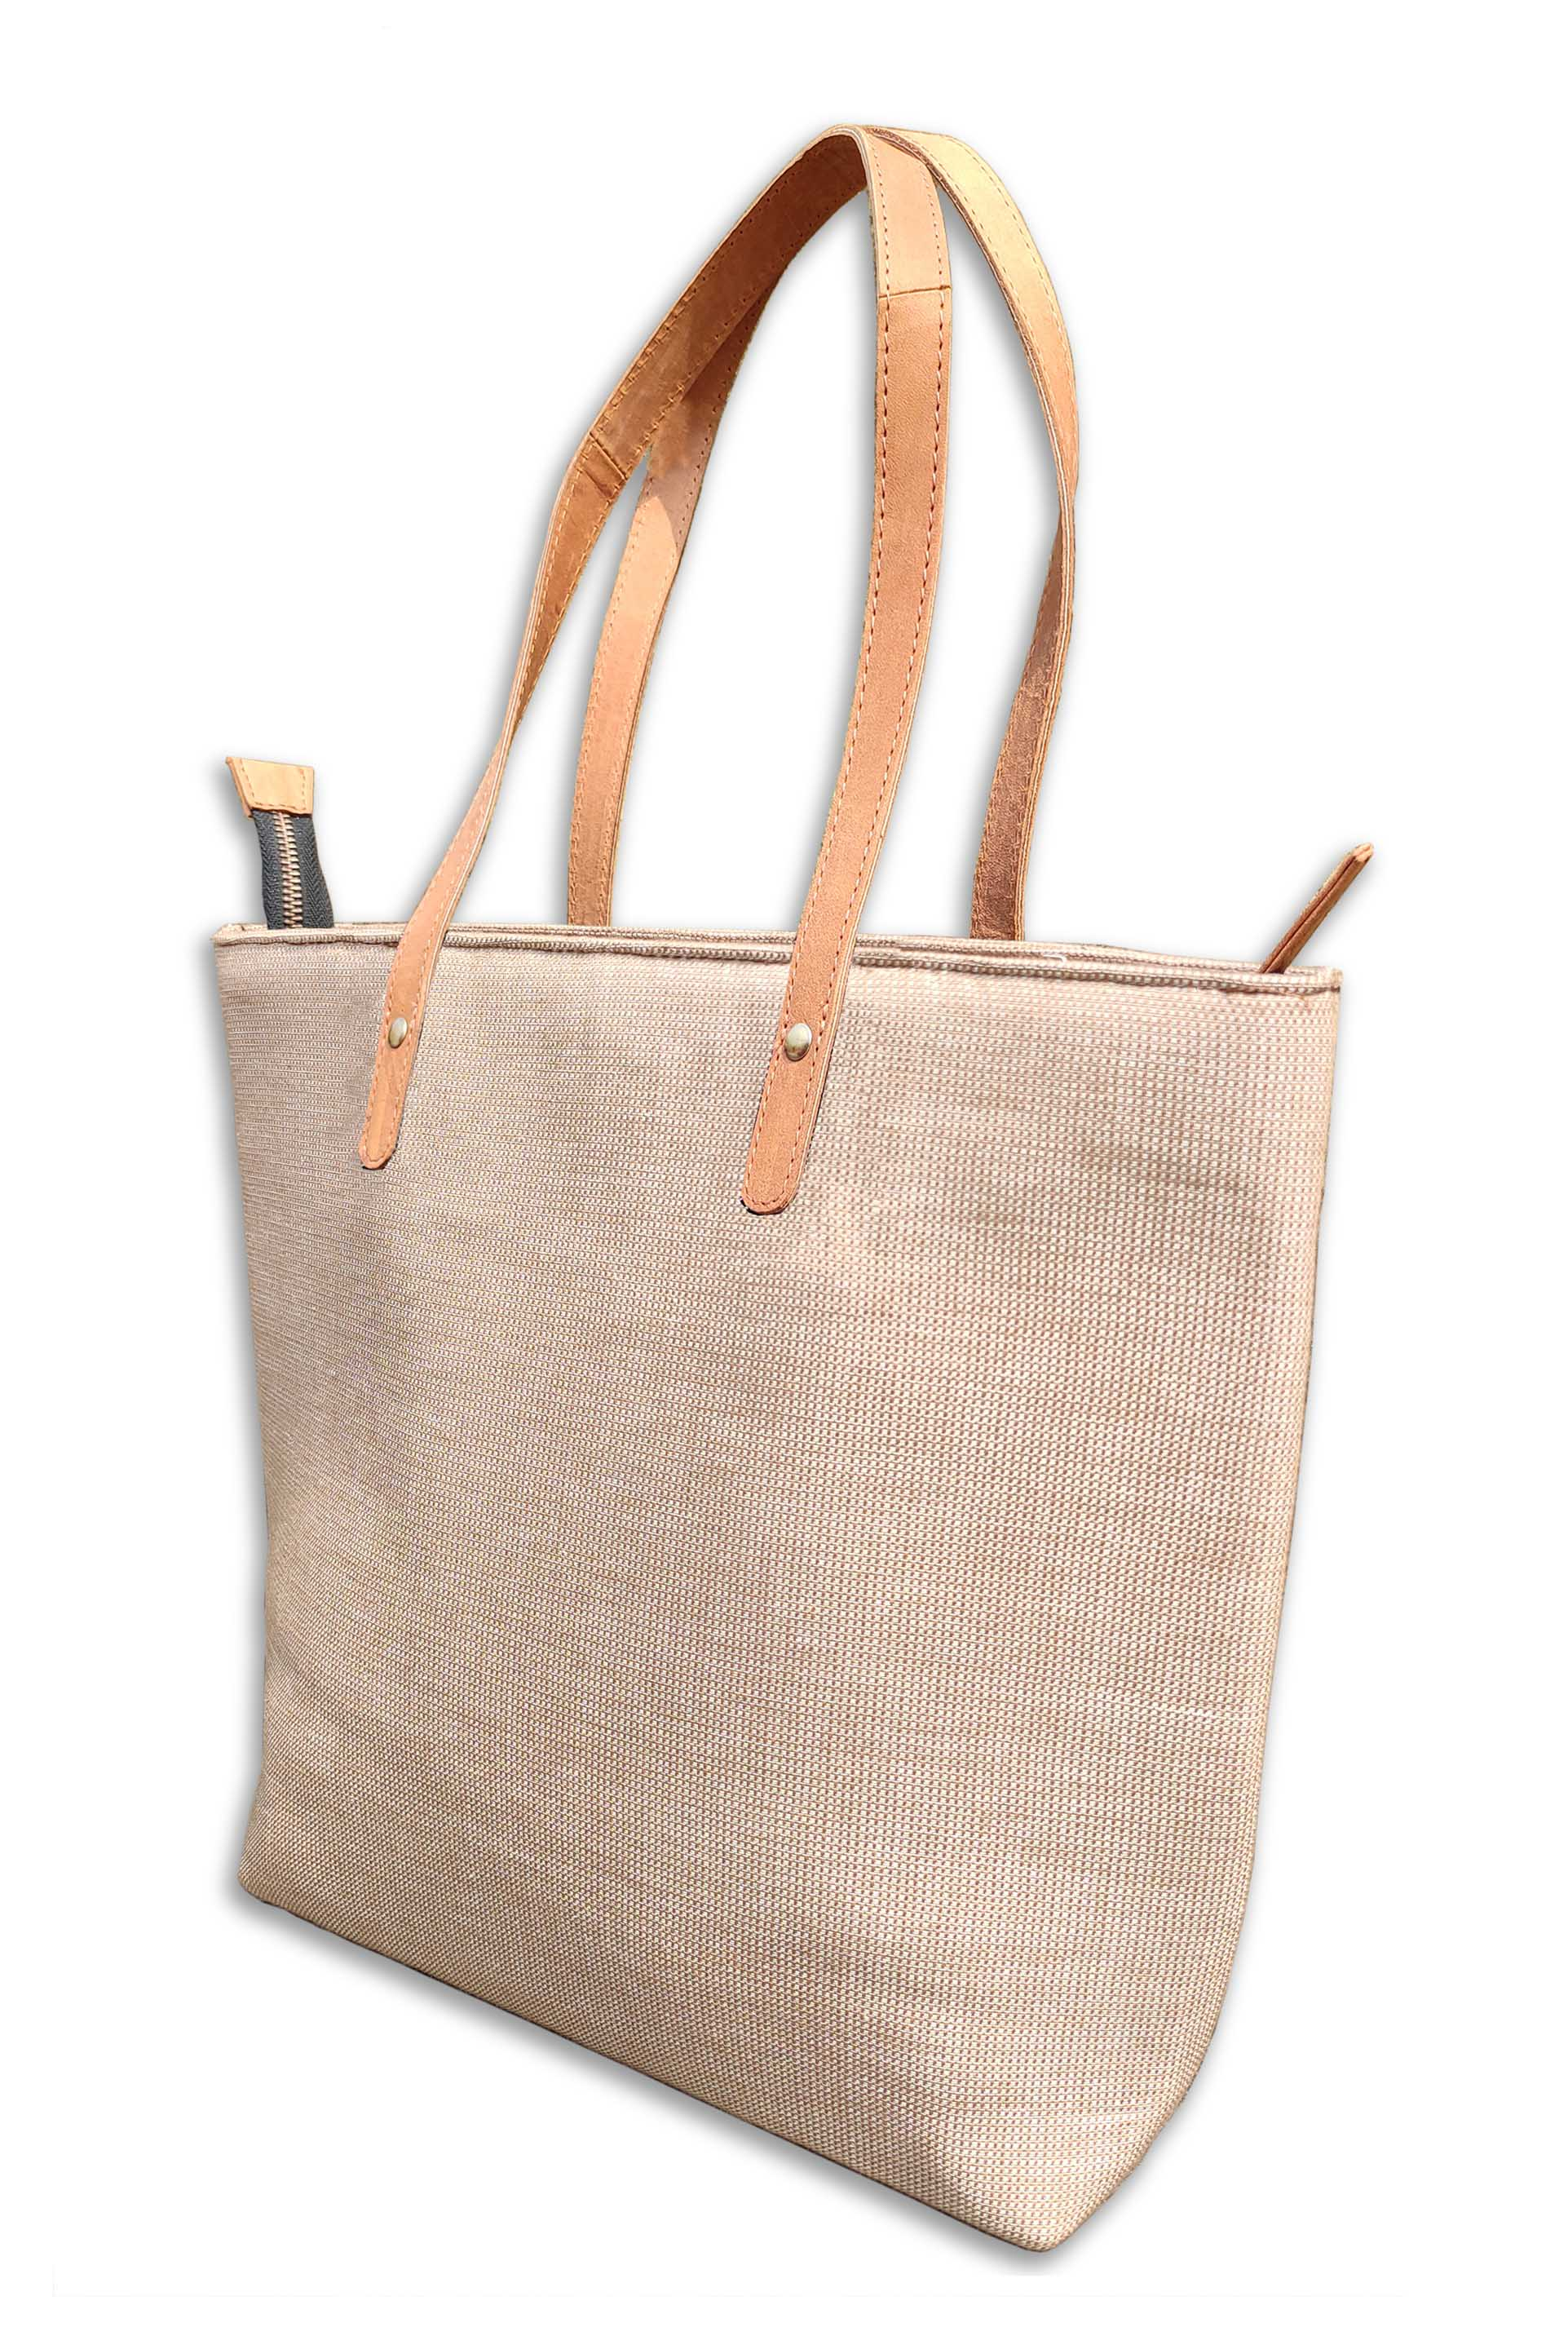 Cotton Beige Tote Bag with Leather Handle